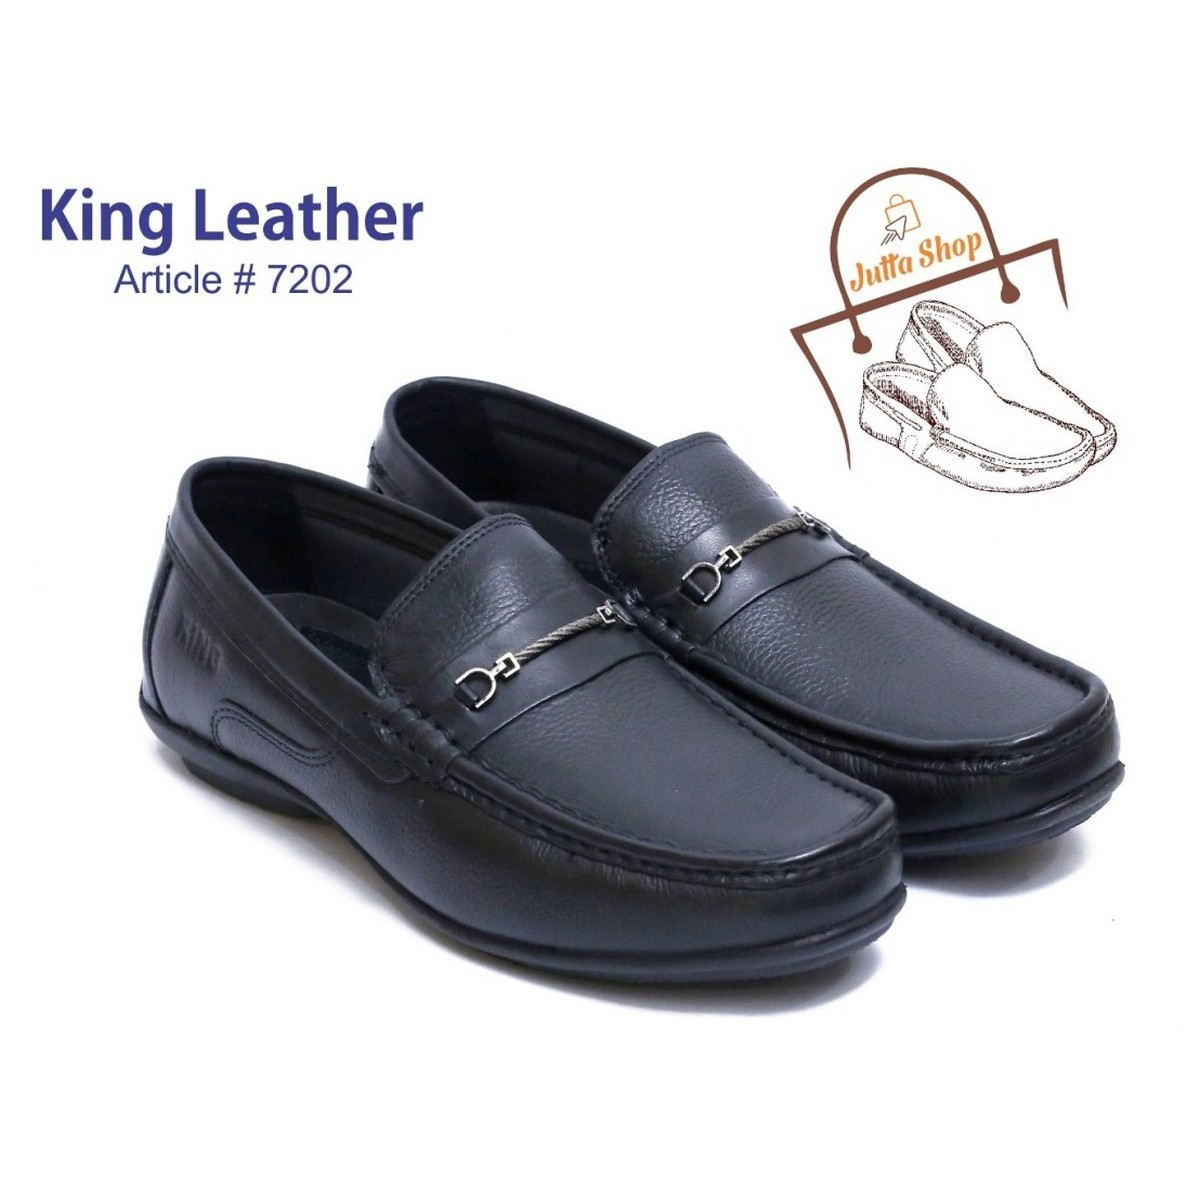 LOAFERS- 100% GENUINE LEATHER HAND MADE FASHION SHOES-  KING LEATHER SHOES ARTICLE # 7202